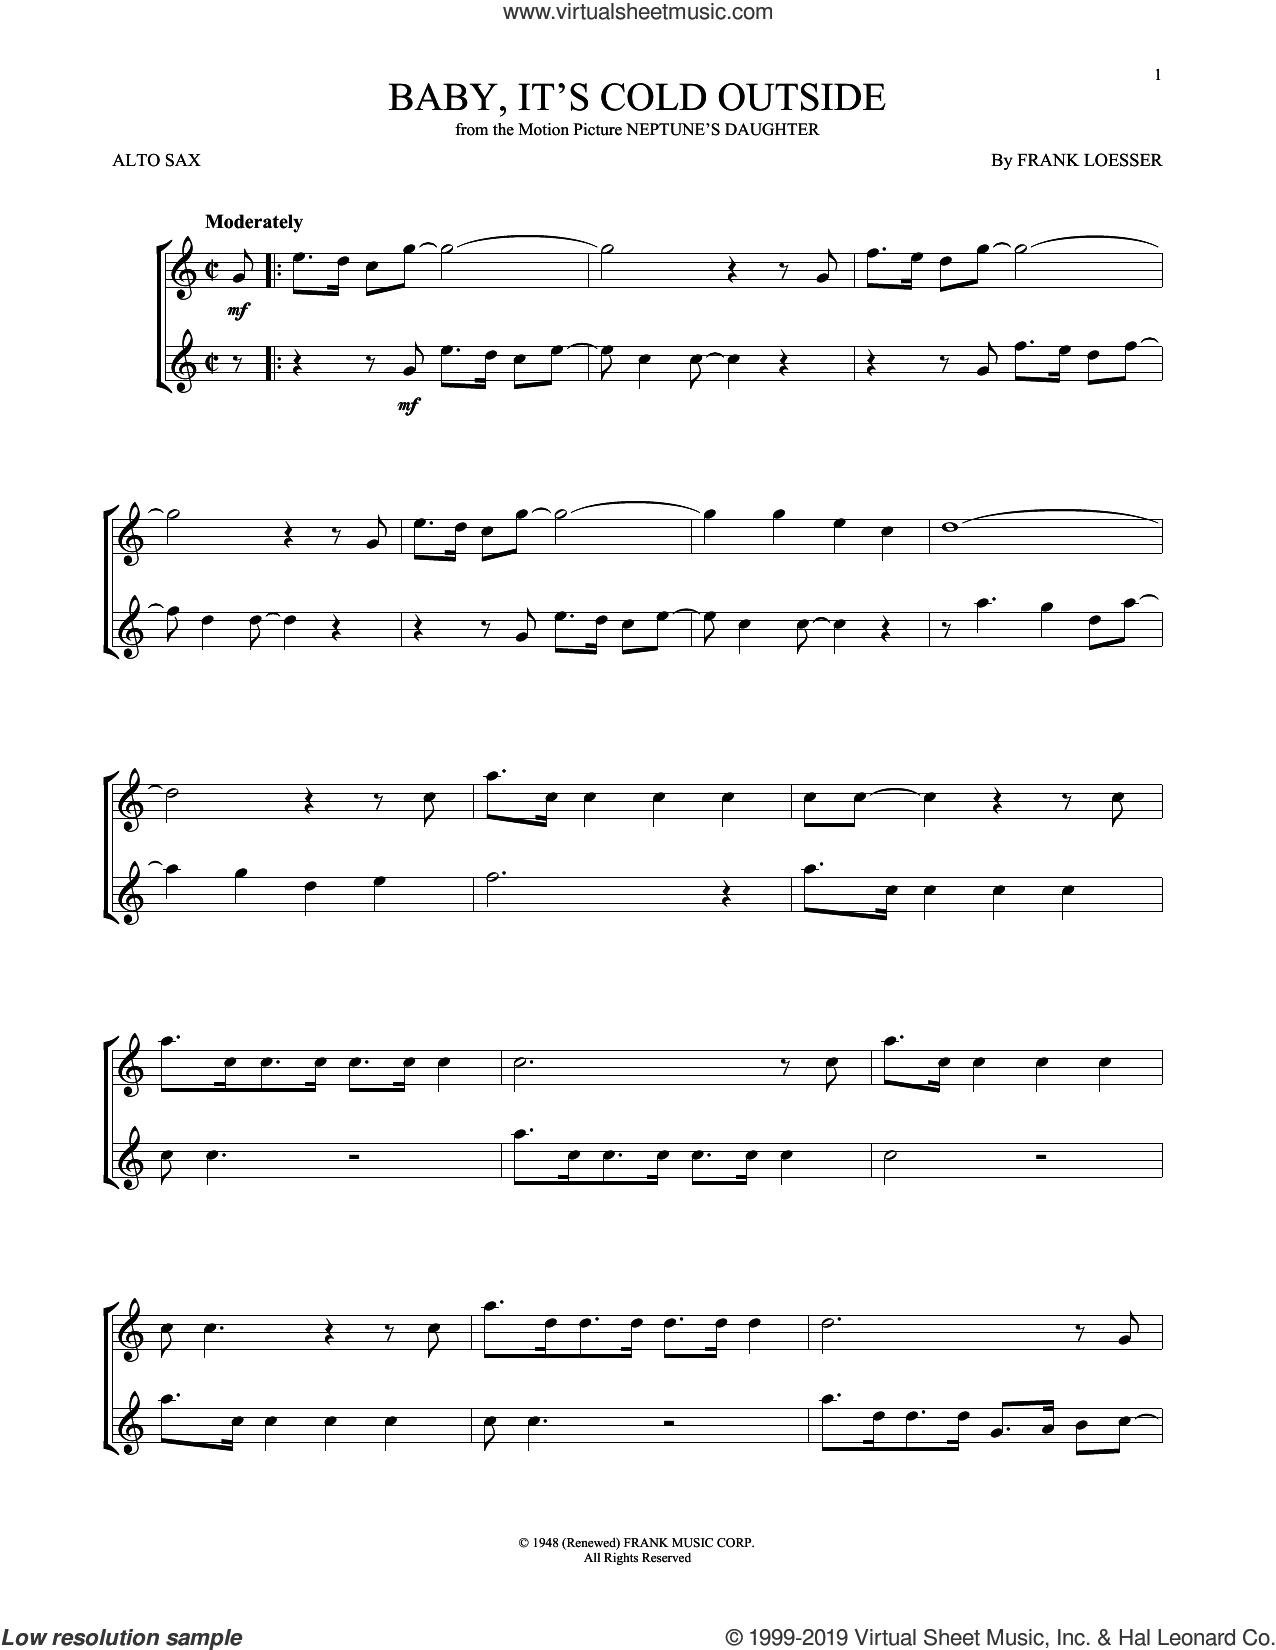 Baby, It's Cold Outside sheet music for alto saxophone solo by Frank Loesser, intermediate skill level